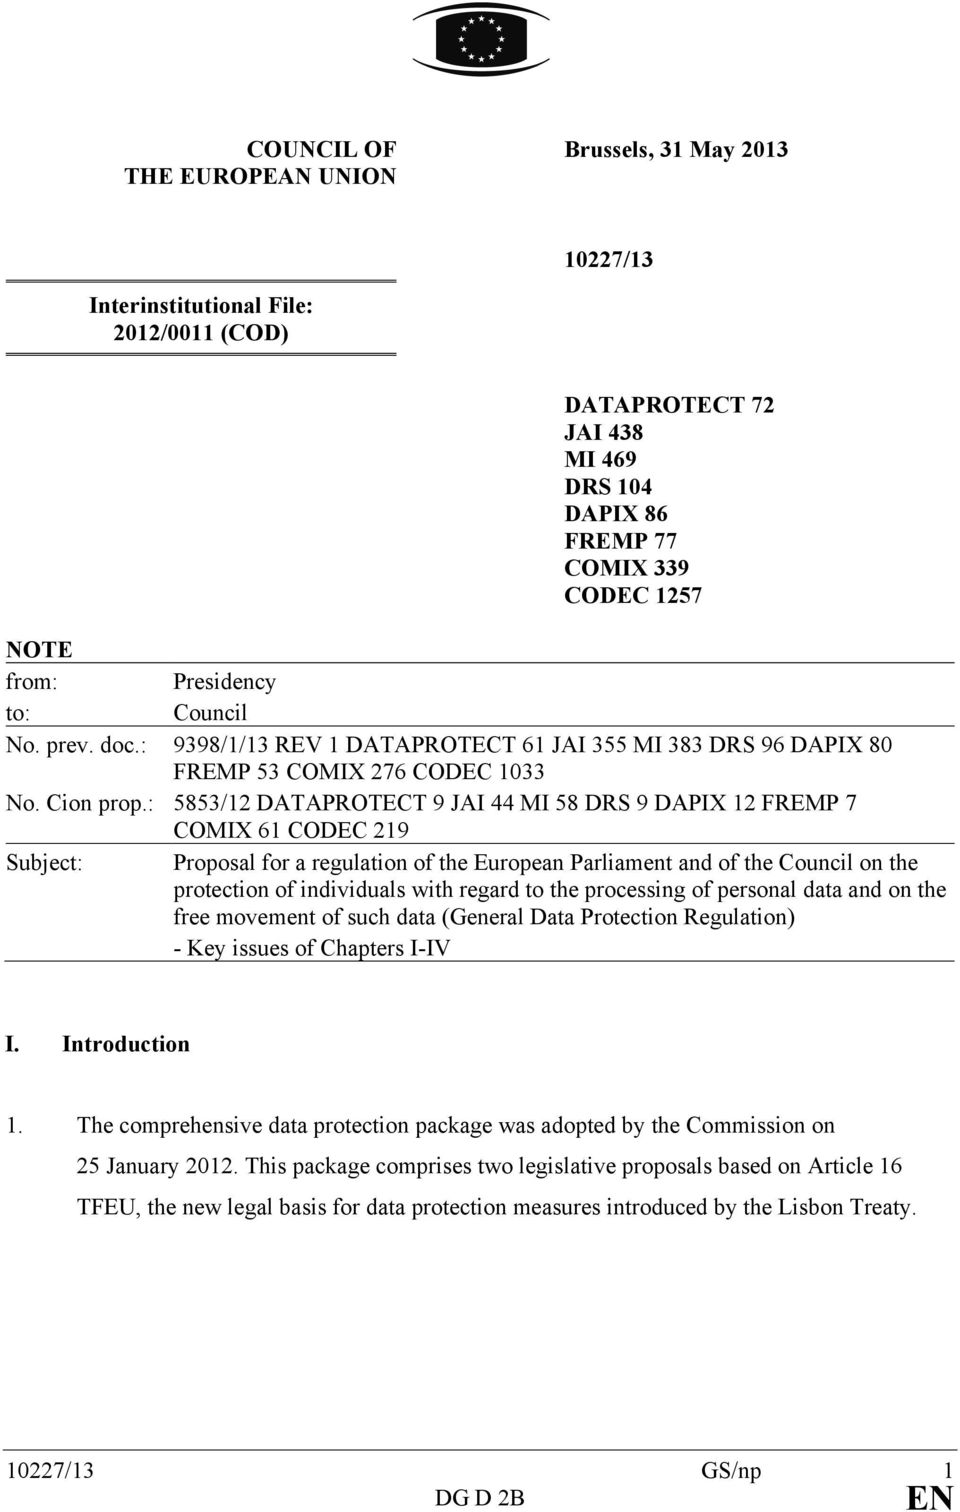 : 5853/12 DATAPROTECT 9 JAI 44 MI 58 DRS 9 DAPIX 12 FREMP 7 COMIX 61 CODEC 219 Subject: Proposal for a regulation of the European Parliament and of the Council on the protection of individuals with